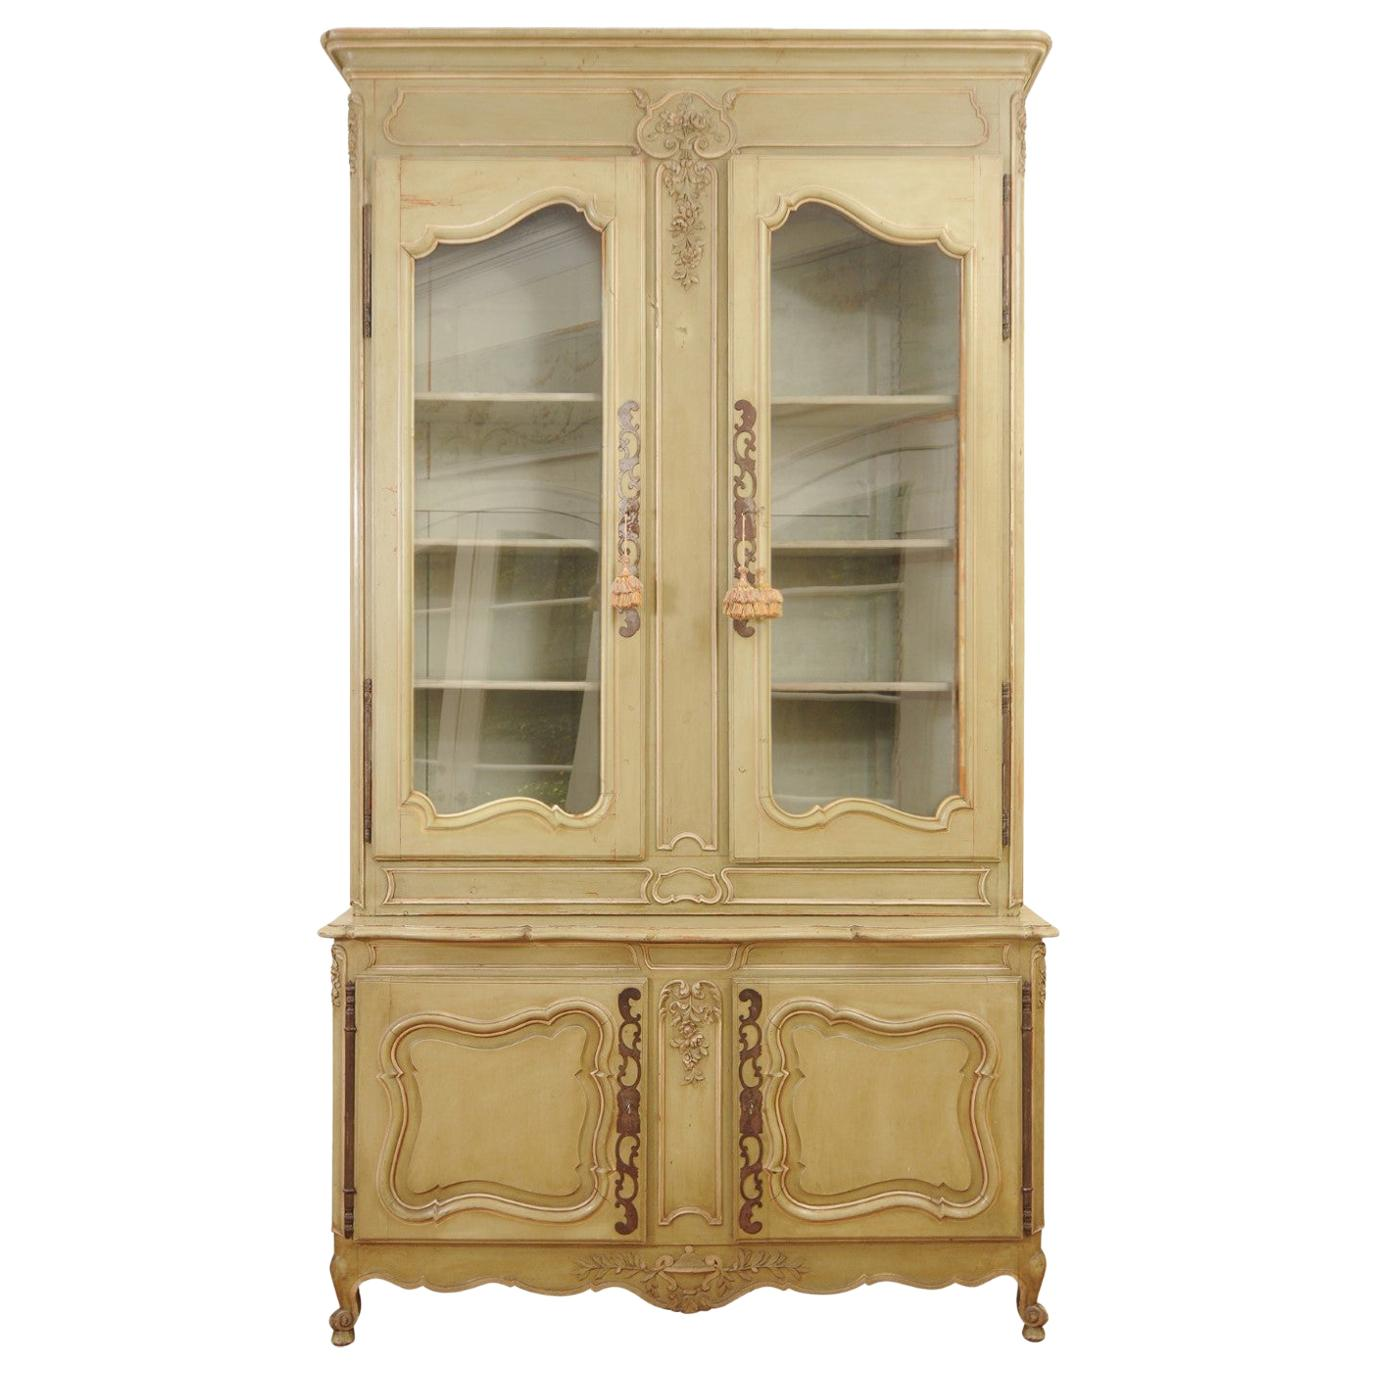 French Restauration Period 1830s Painted Buffet à Deux-Corps with Glass Doors